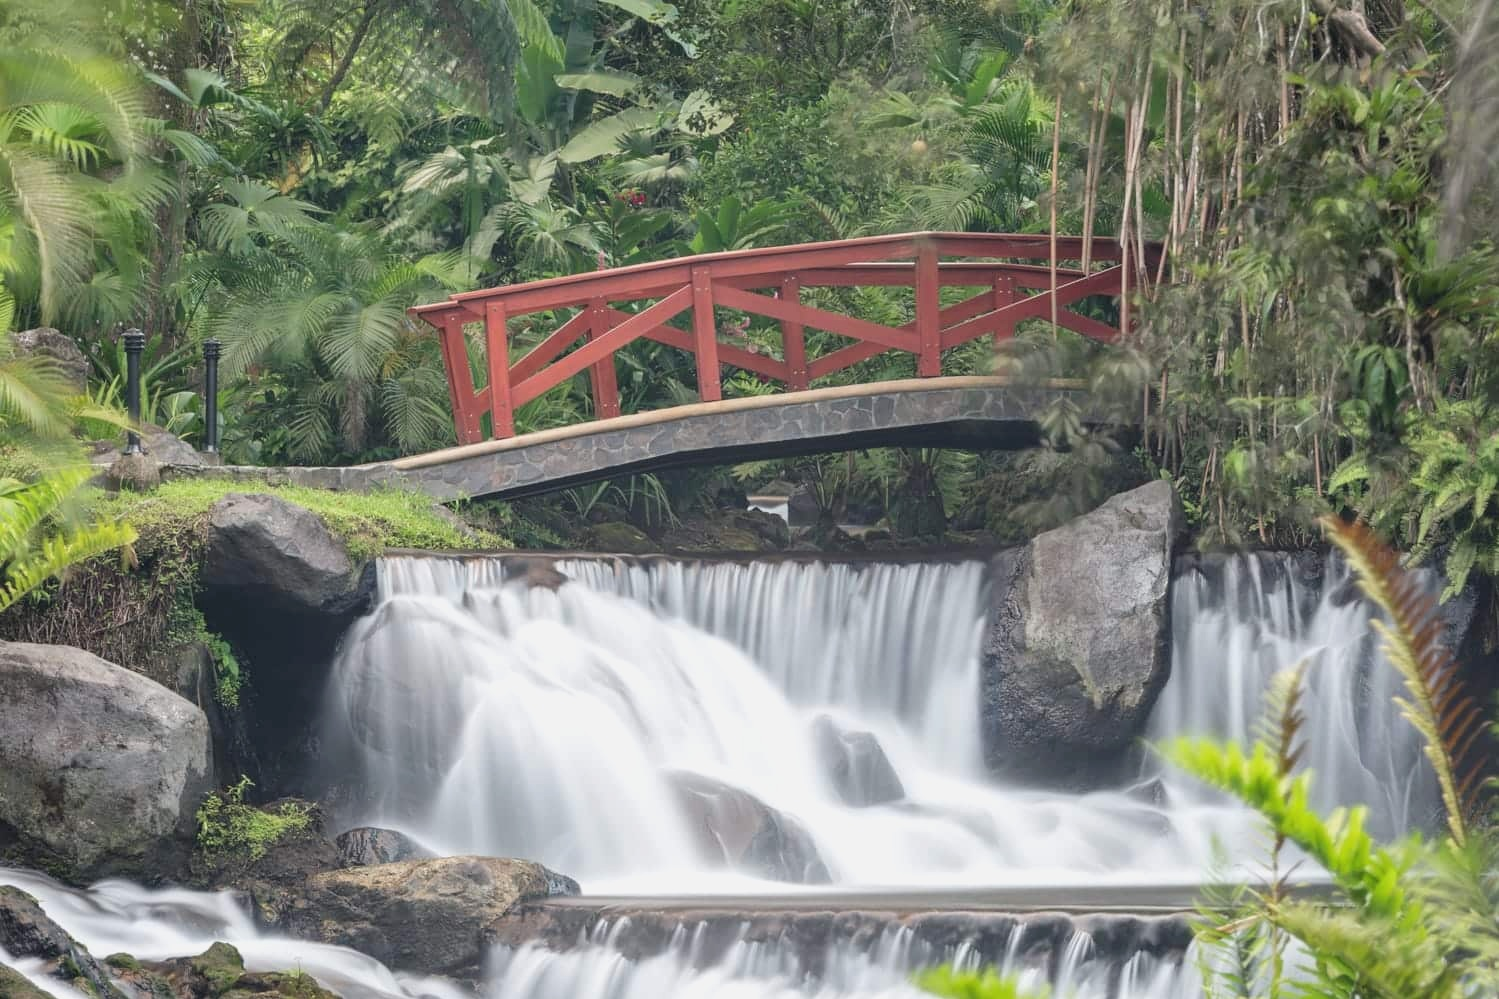 This picturesque red bridge crossing a waterfall feed by a volcanic thermal spring is located at Tabacón Thermal Resort and Spa in La Fortuna, a great wedding venue in Costa Rica.